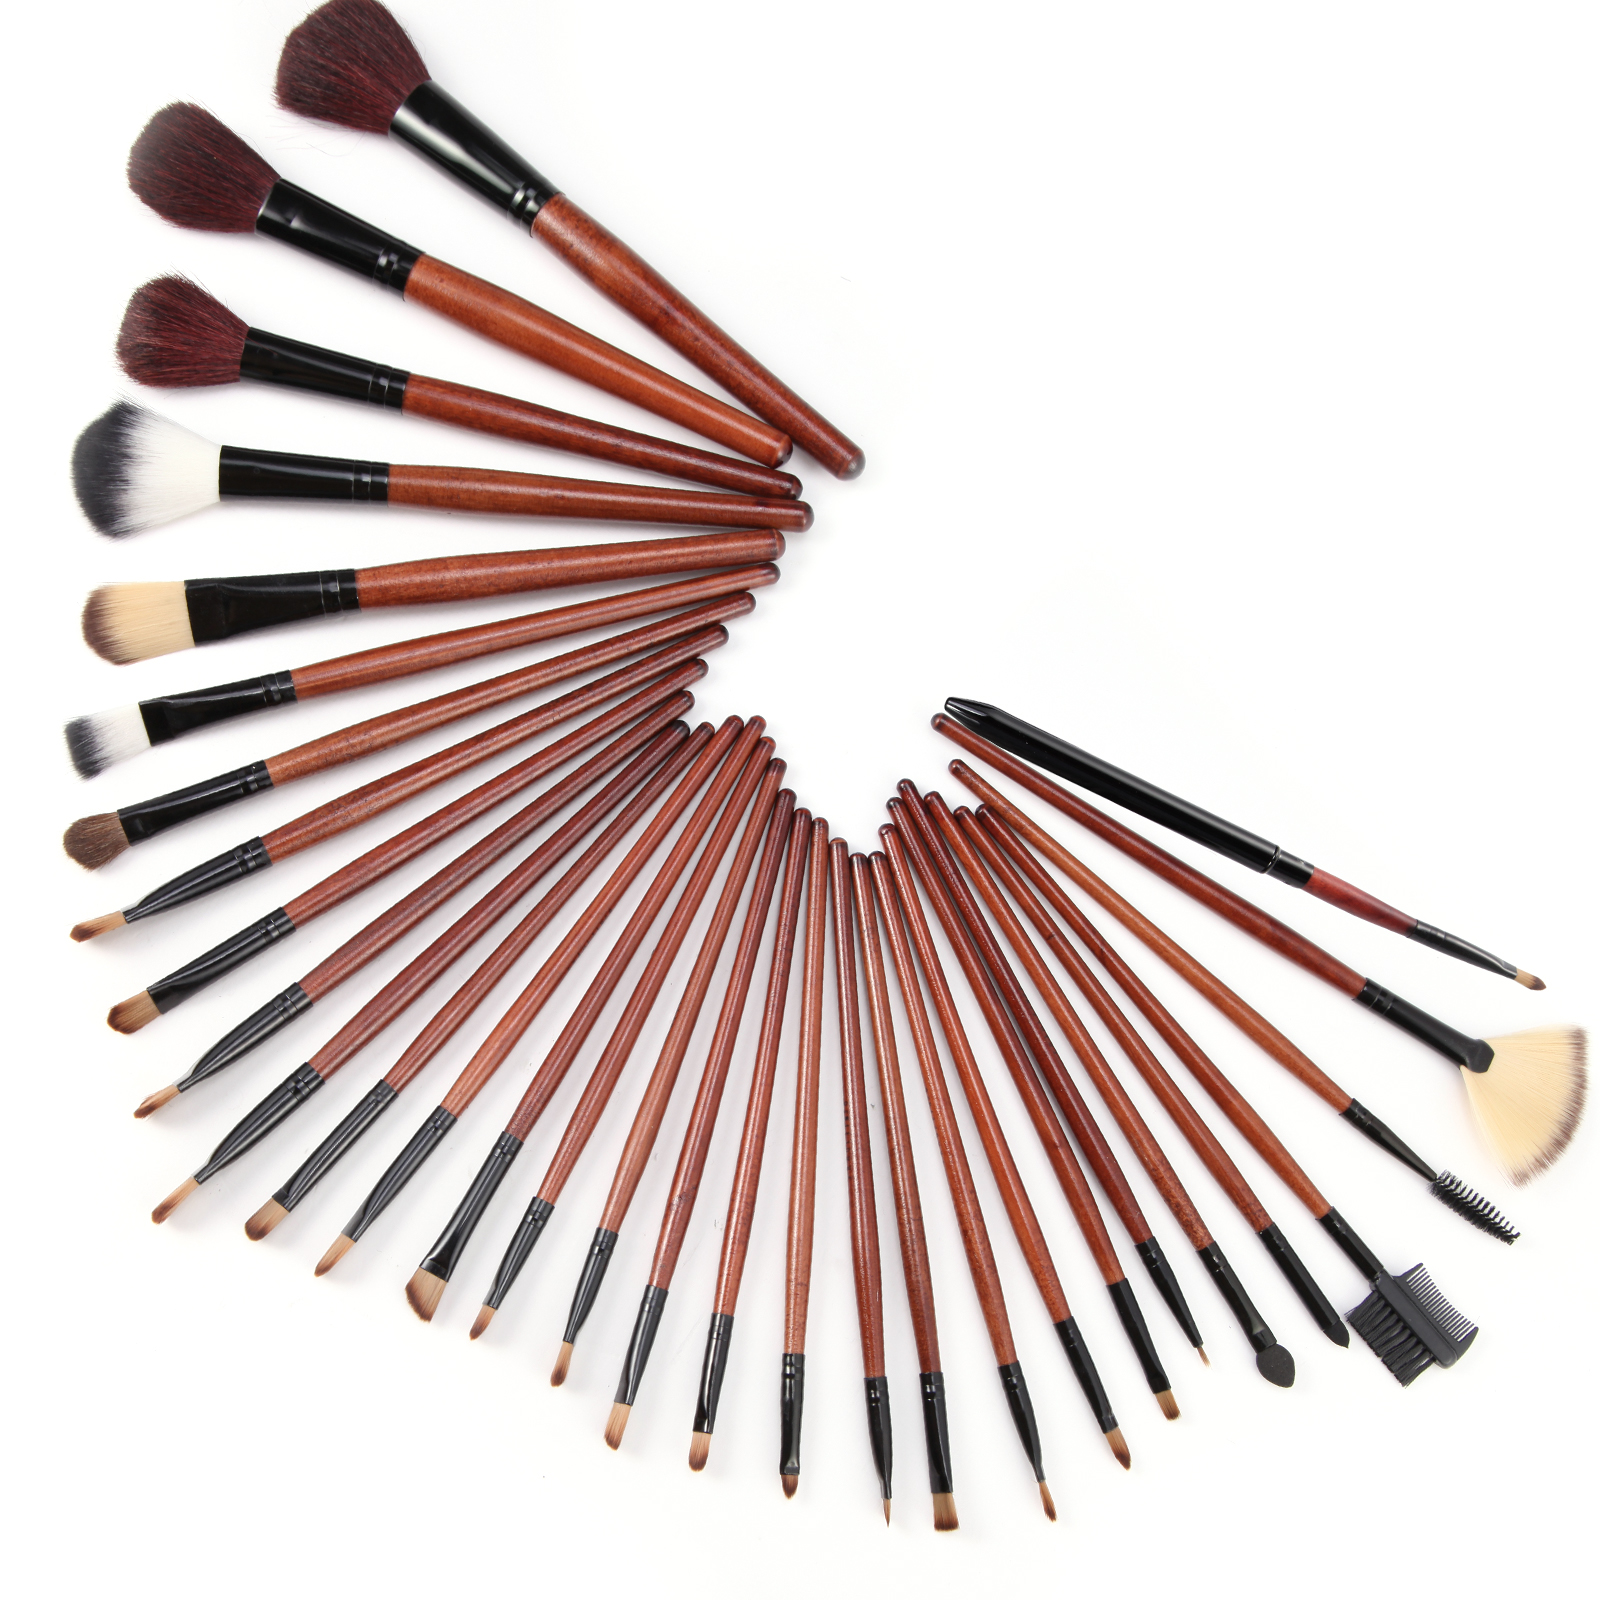 pinselset 31st echthaare make up brush pinsel set pinsel mit kosmetik tasche ebay. Black Bedroom Furniture Sets. Home Design Ideas